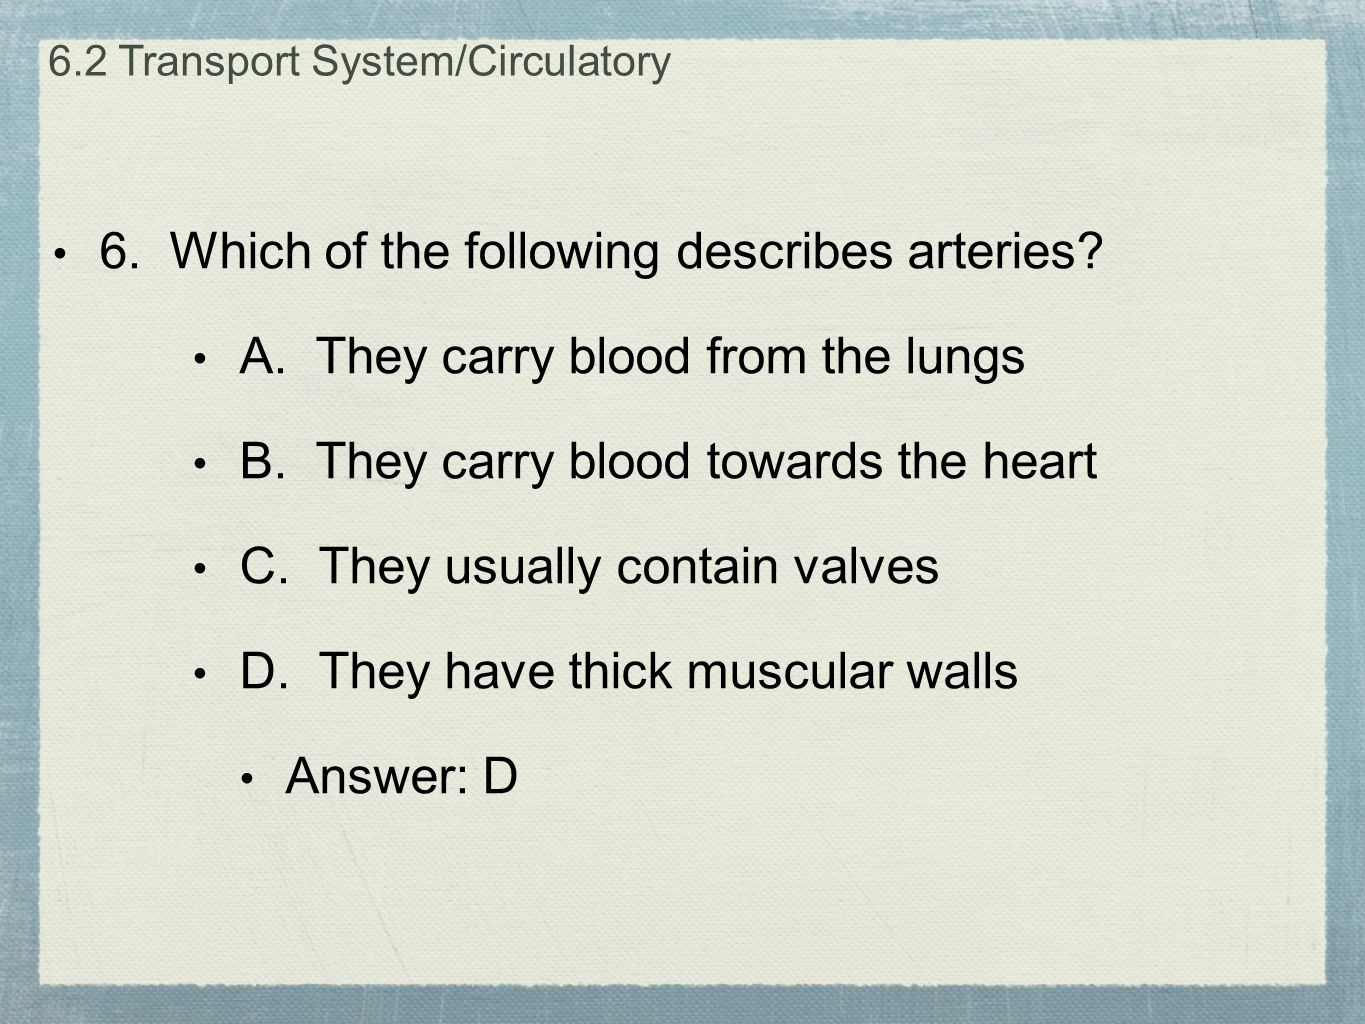 6. Which of the following describes arteries? A. They carry blood from the lungs B. They carry blood towards the heart C. They usually contain valves